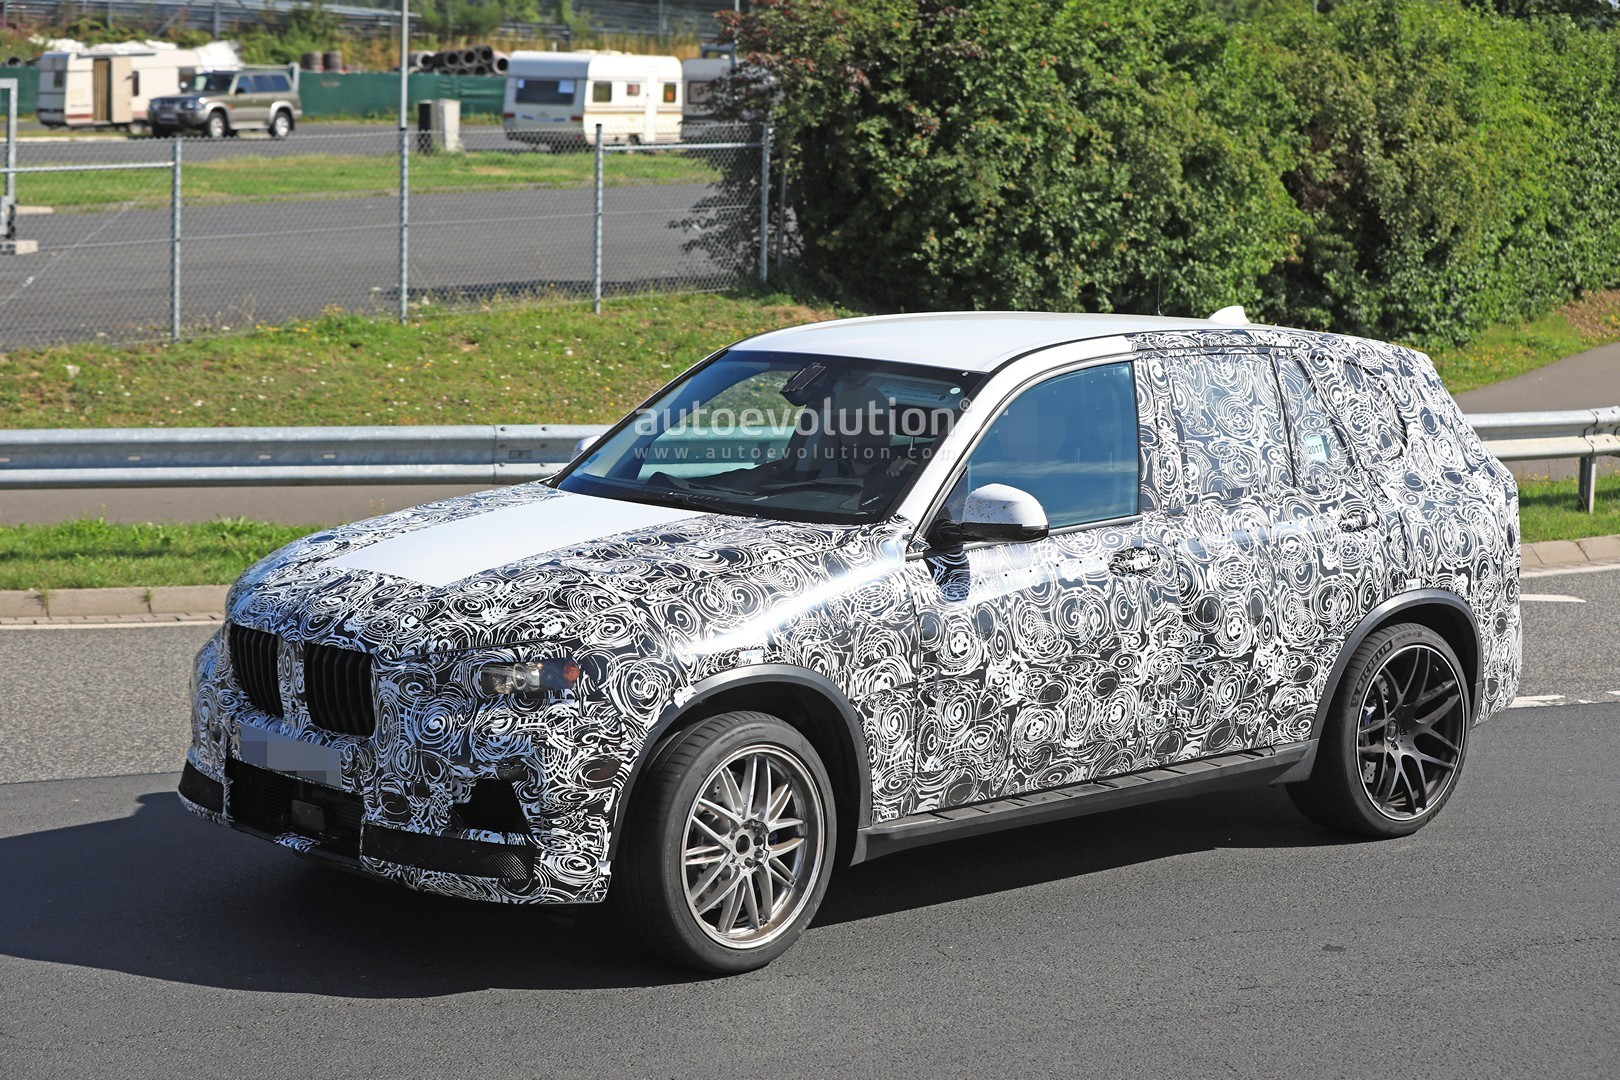 spyshots 2019 bmw x5 m spotted for the first time packs 600 hp autoevolution. Black Bedroom Furniture Sets. Home Design Ideas